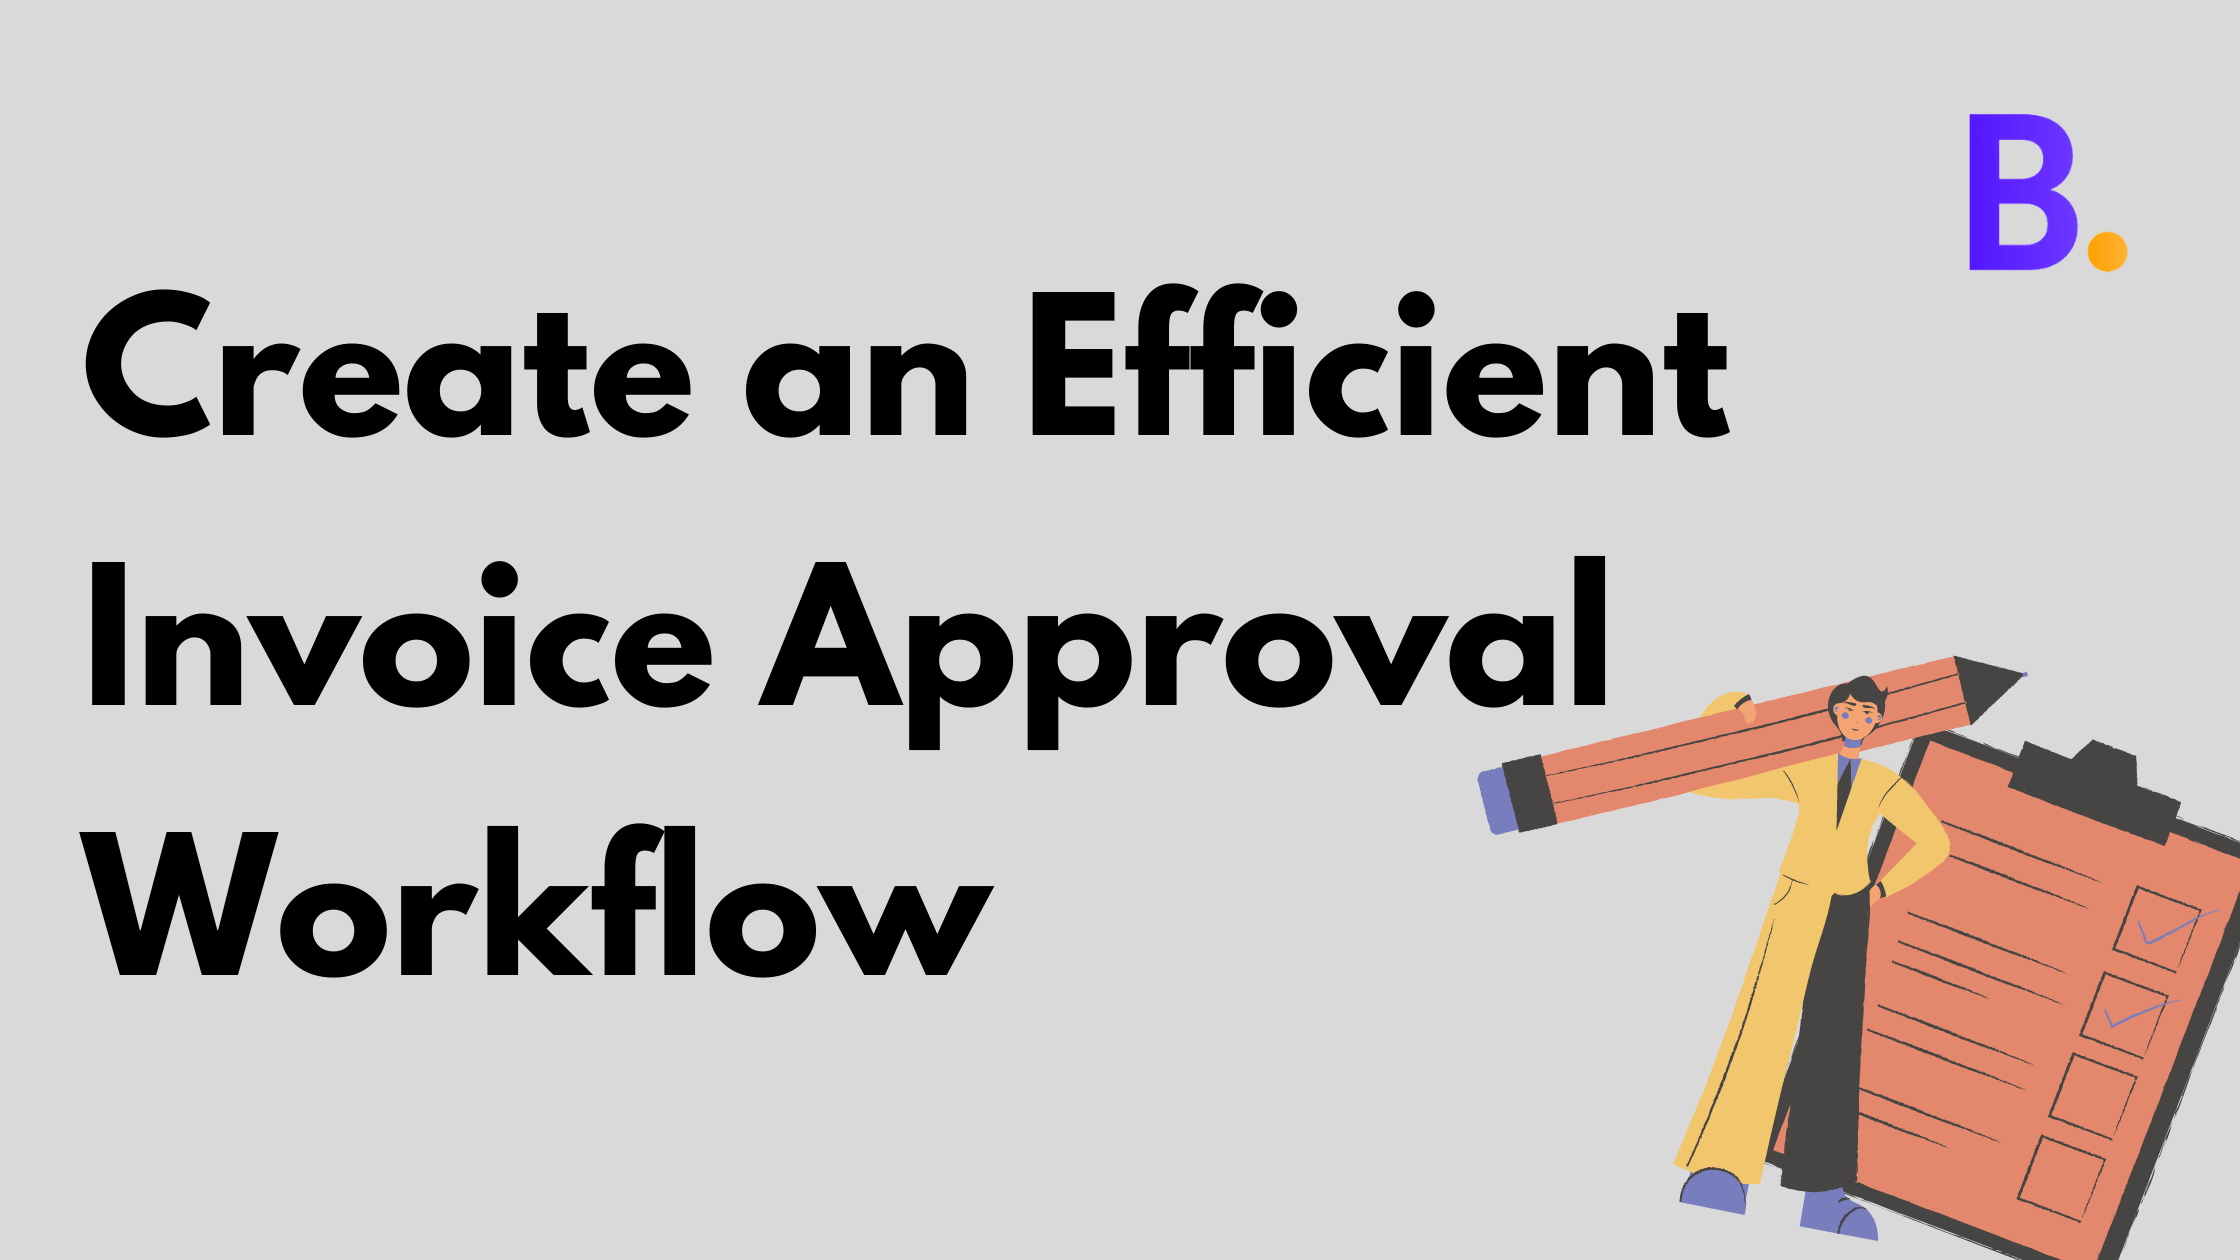 Create Invoice Approval Workflow